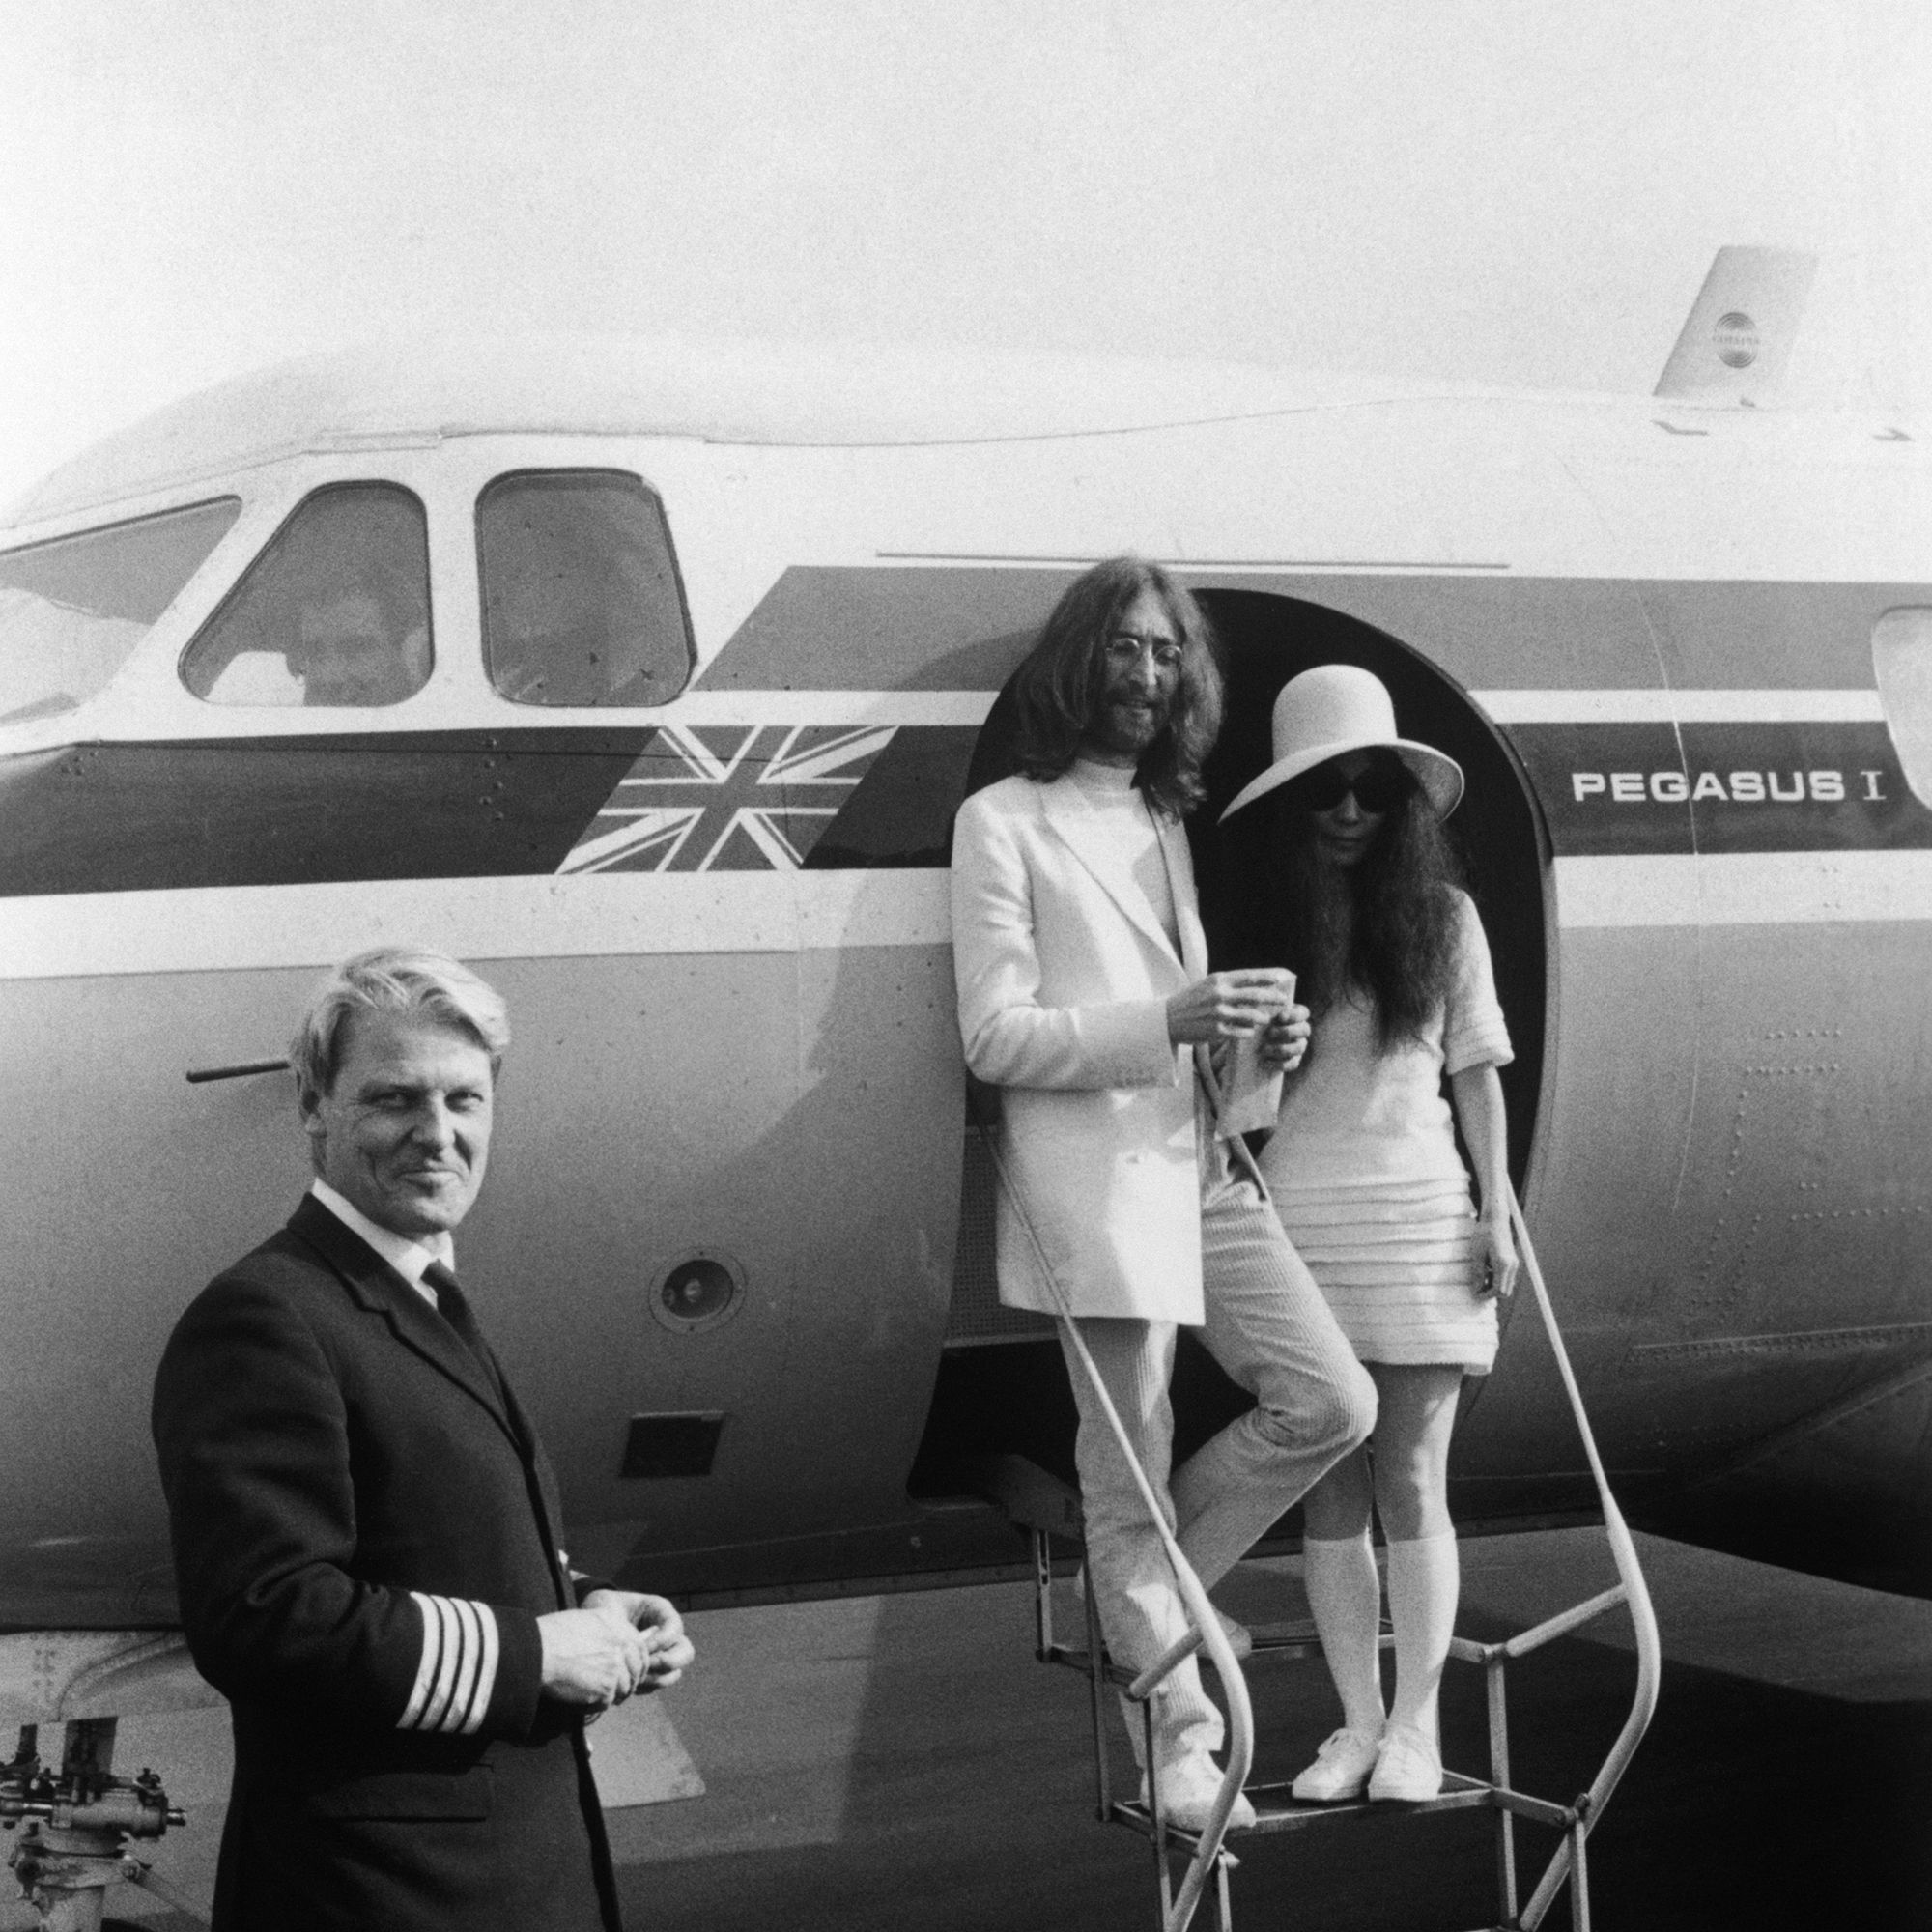 John Lennon and Yoko Ono, both dressed in white, board a private aircraft in Gibraltar after their wedding, 20th March 1969. Their pilot Trevor Copleston stands by the plane. (Photo by Simpson/Express/Getty Images)